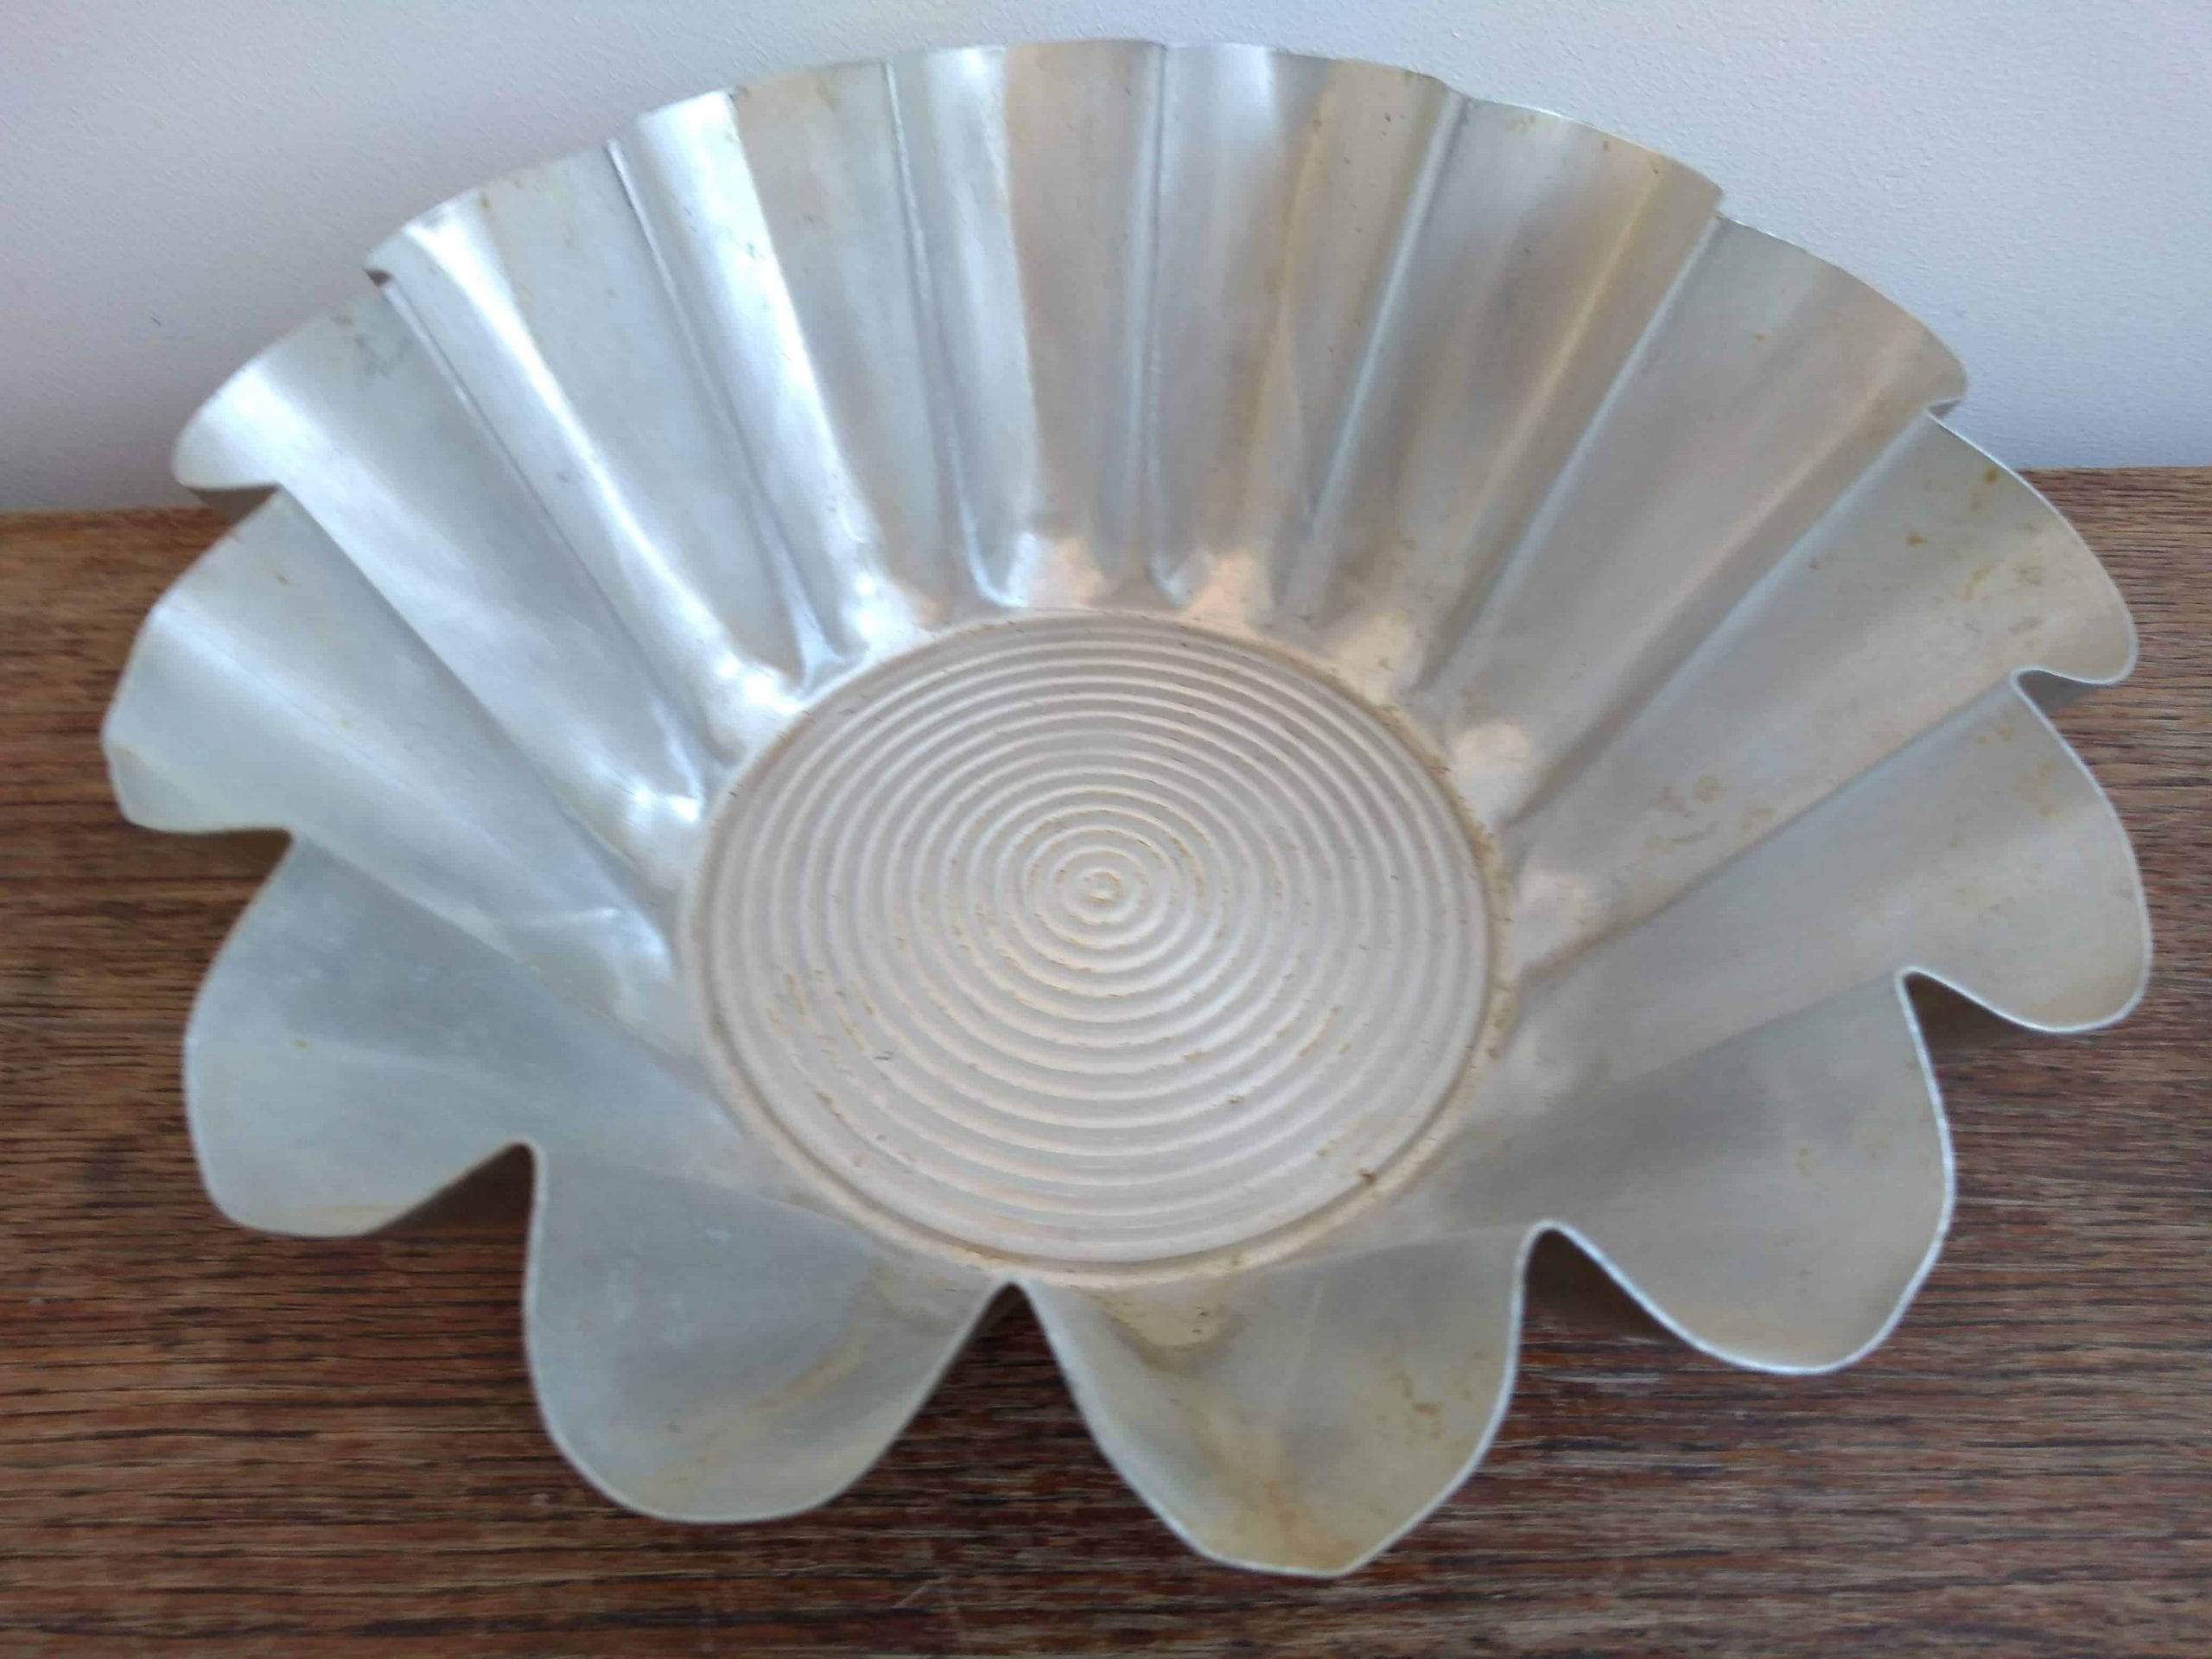 Vintage French Cake Pudding Baking Cooking Mould Tin Patisserie Lampshade Lamp Shade Light Fitting c 1950-60/'s  English Shop